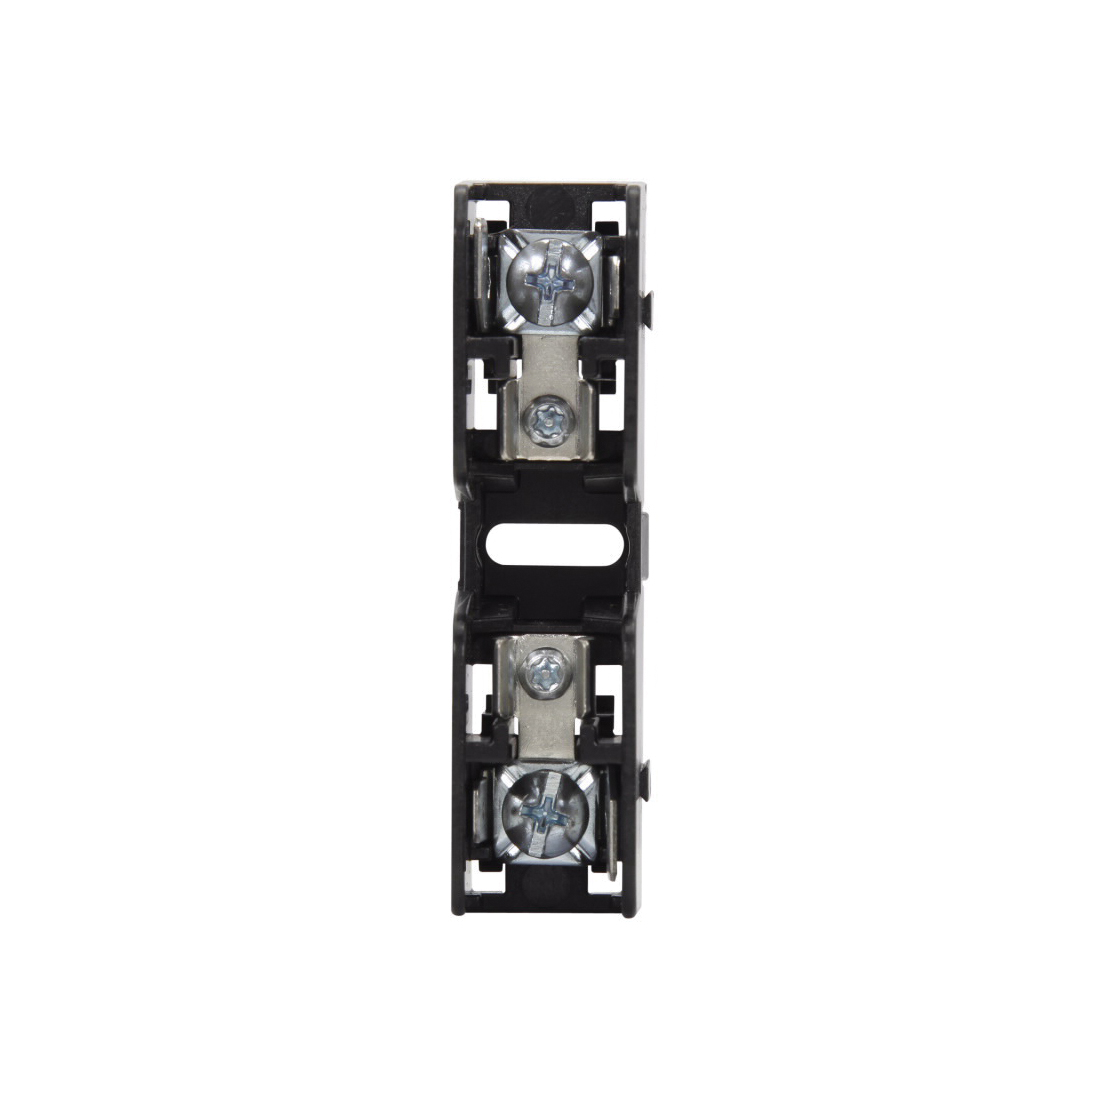 Circuit Breakers Protection Fuses Fuse Holder Steiner Automotive Box Manufacturer Manufacturers Home Page Specification Sheet